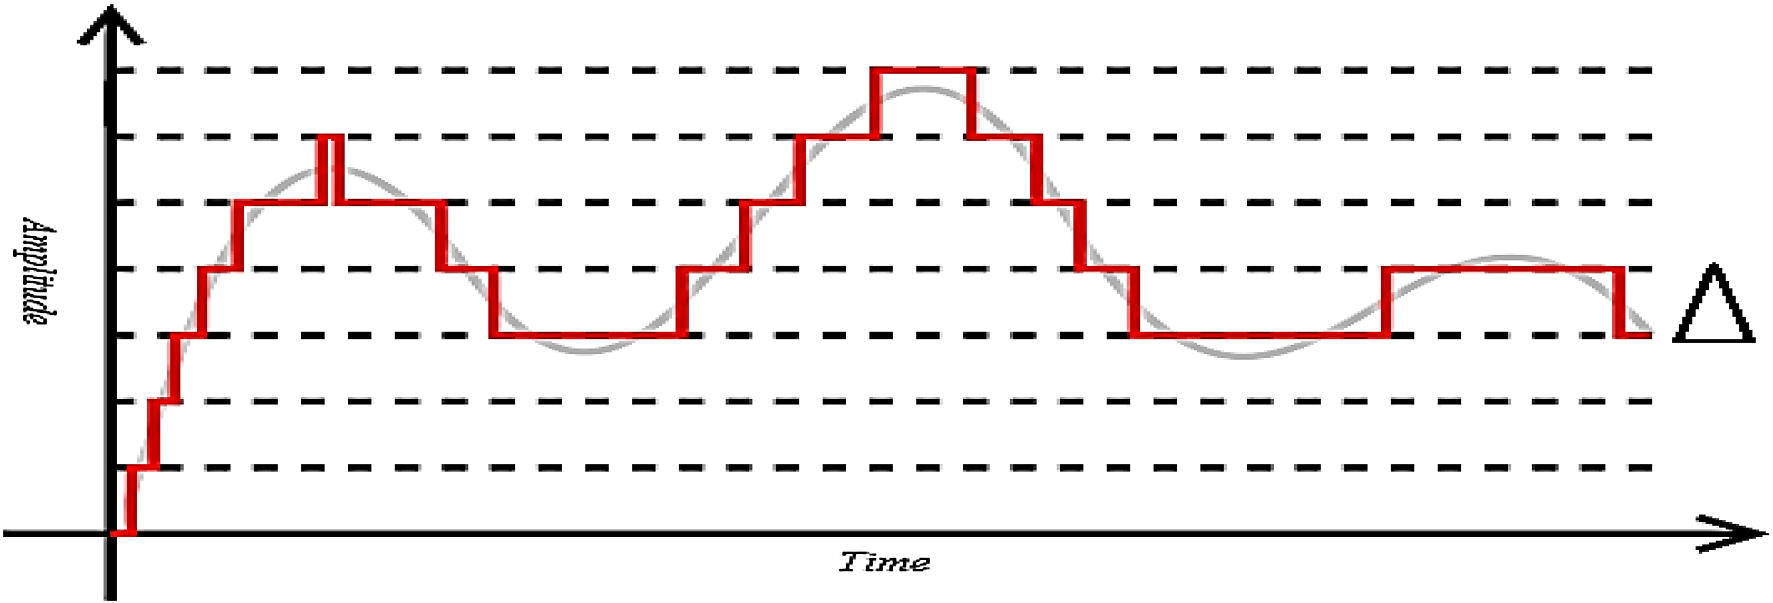 Achieving lossless compression of audio by encoding its